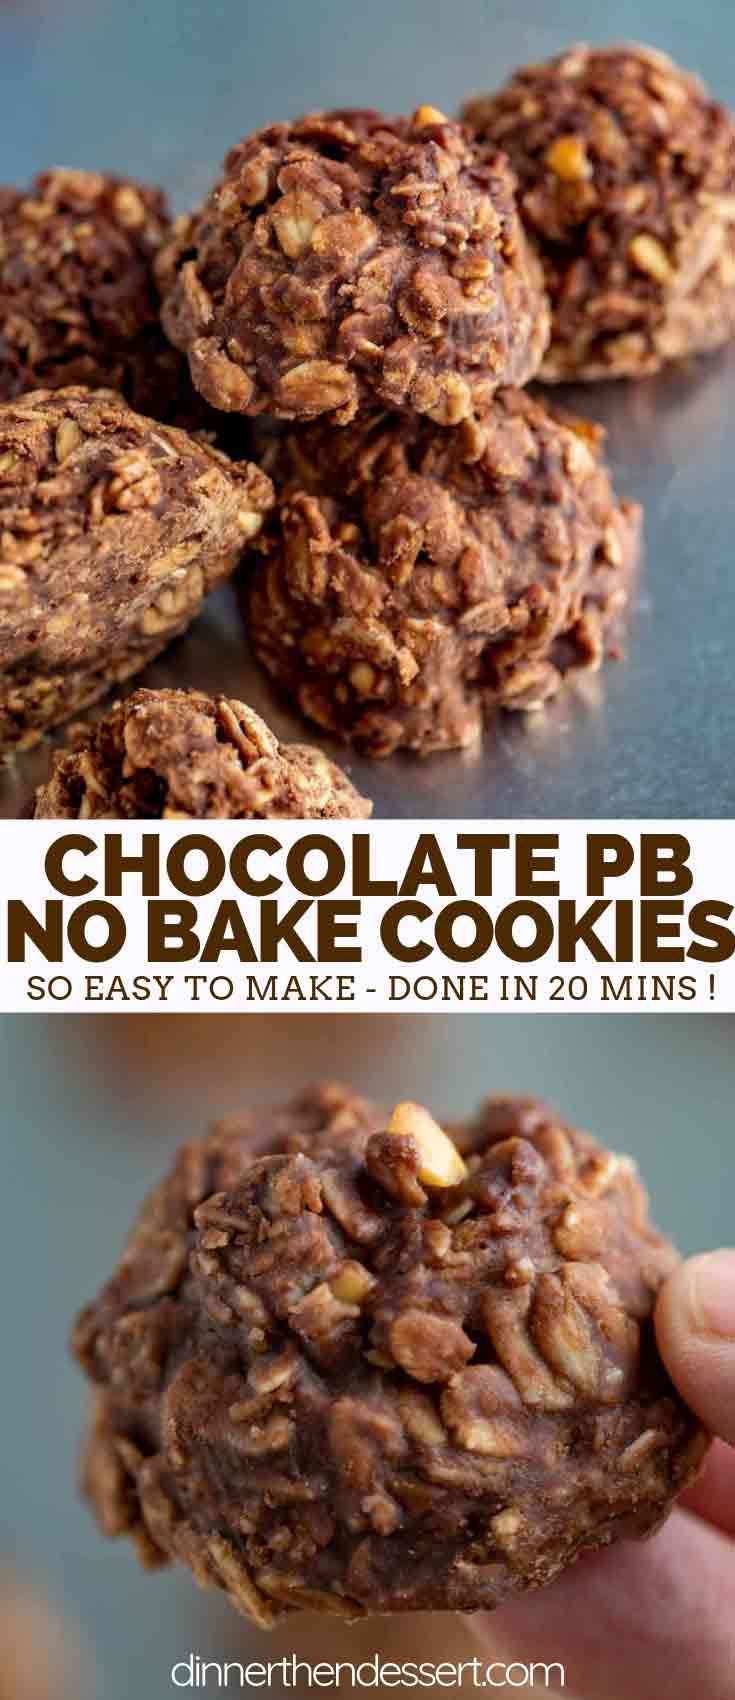 No-Bake Cookies with Peanut Butter and Chocolate